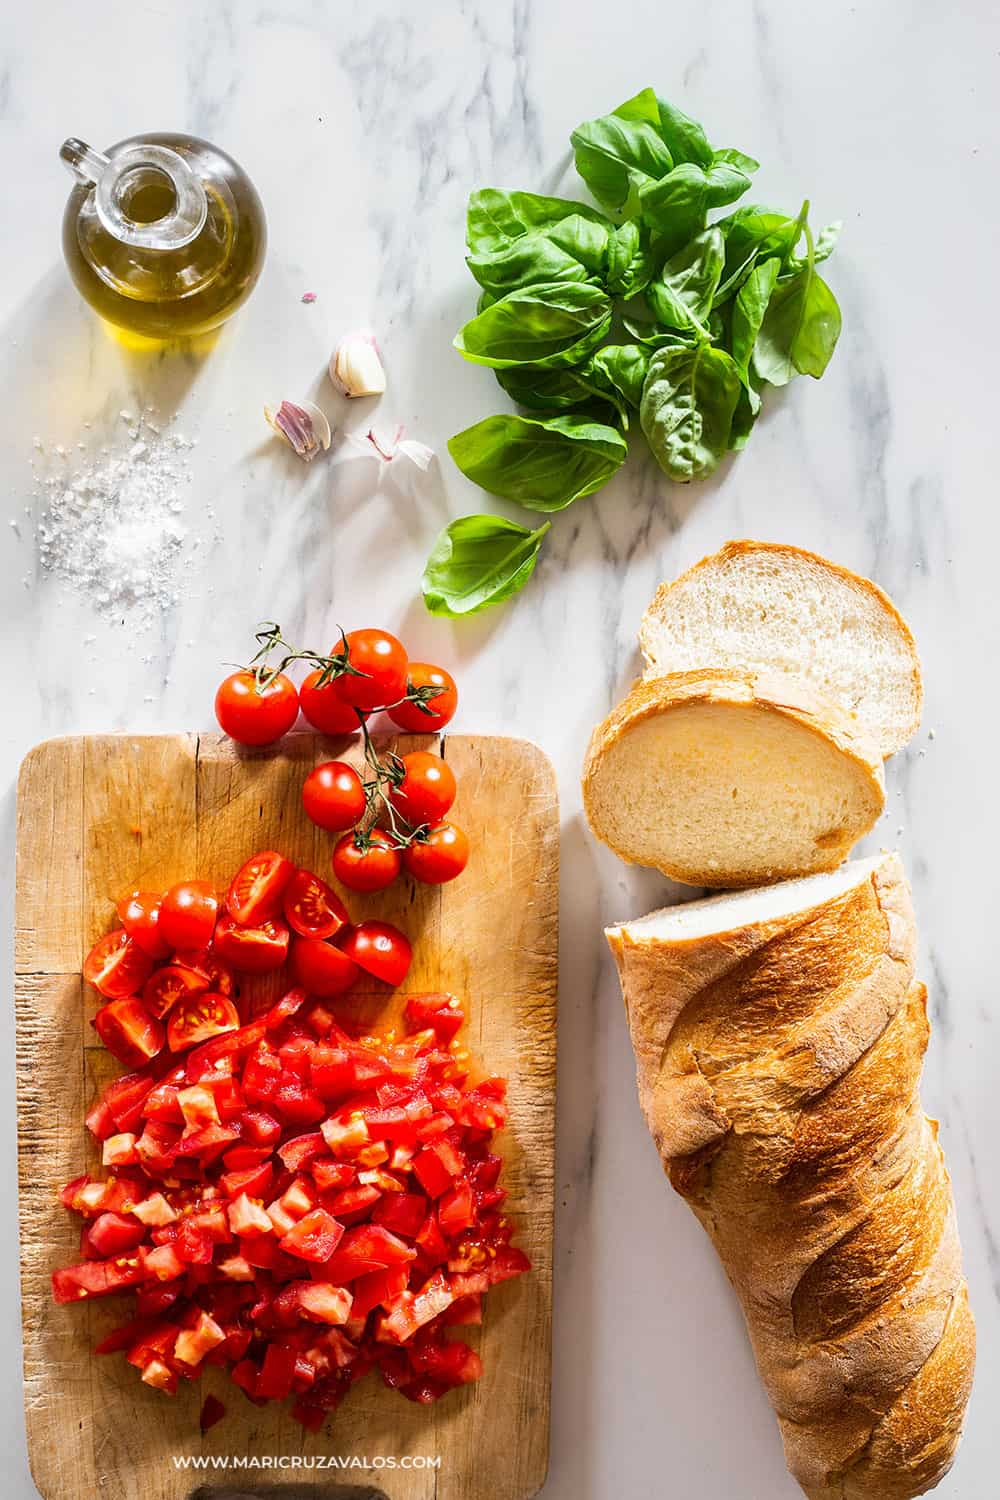 Ingredients for bruschetta al pomodoro displayed on a marble surface.